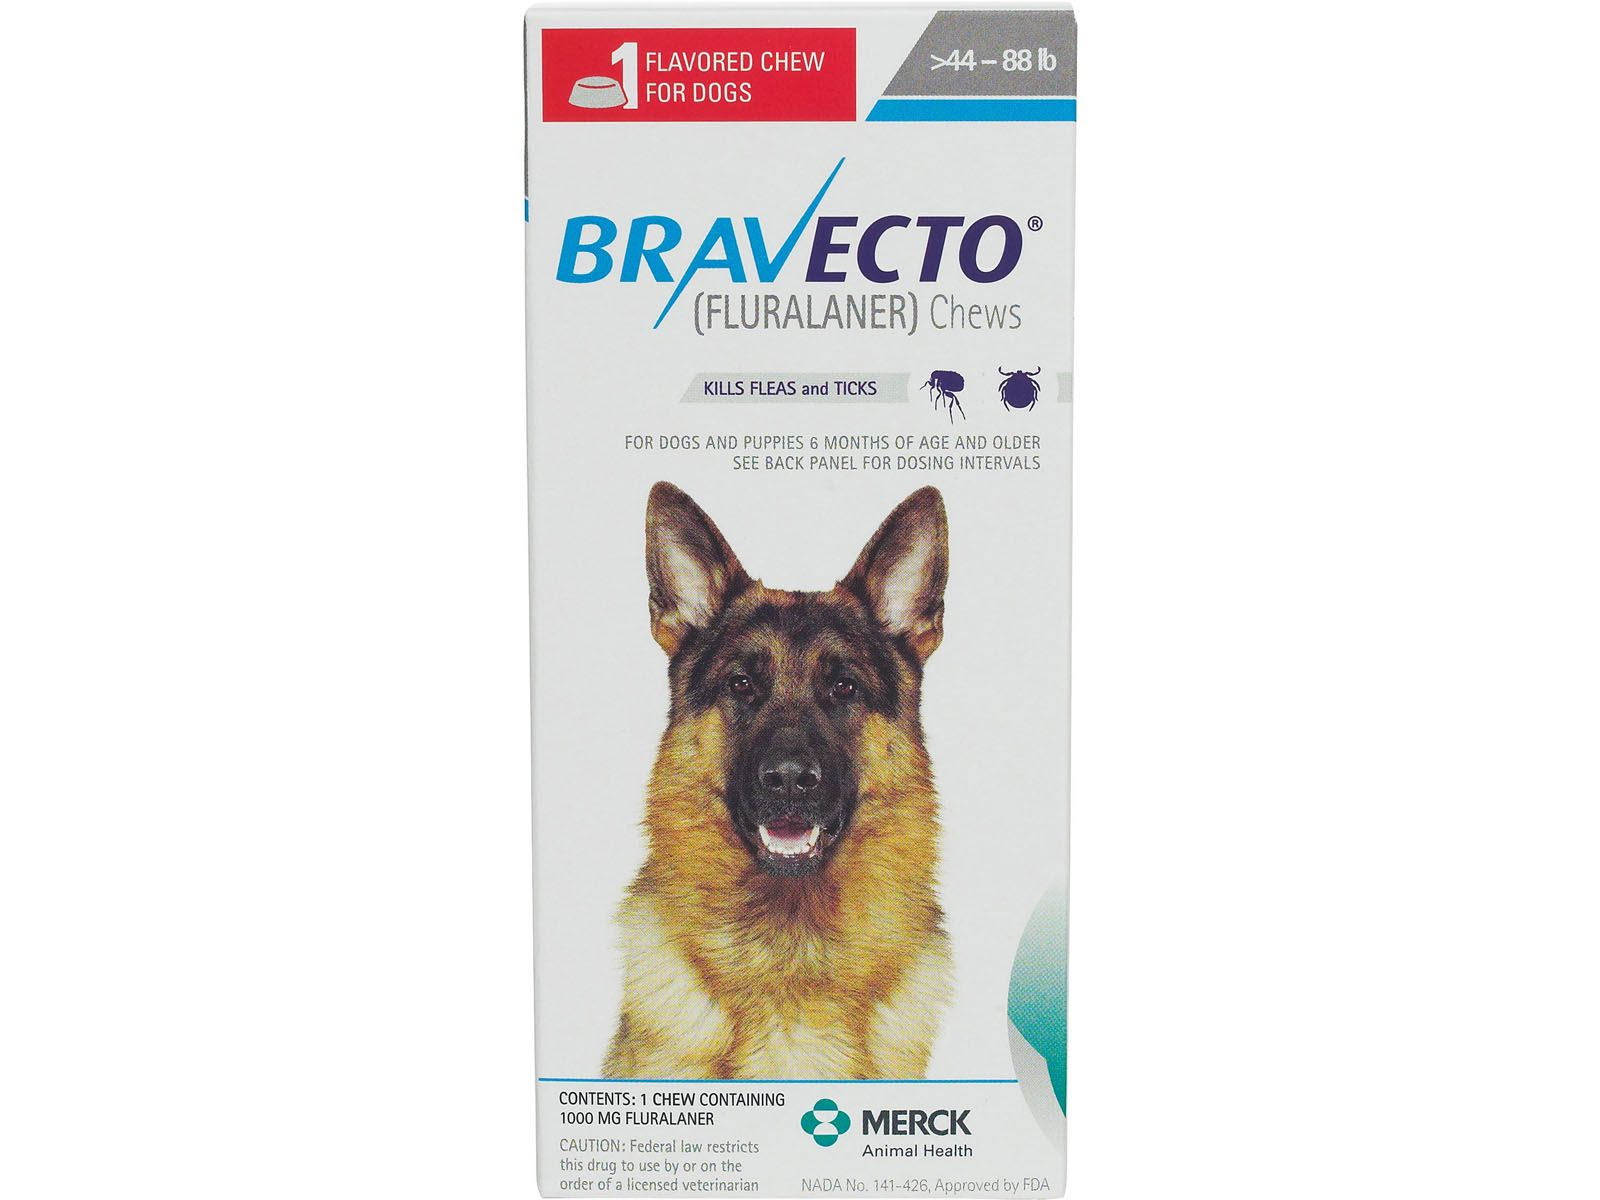 Bravecto Flea Tick Treatment Chewable For Dogs 1125 Mg2 Ct 44